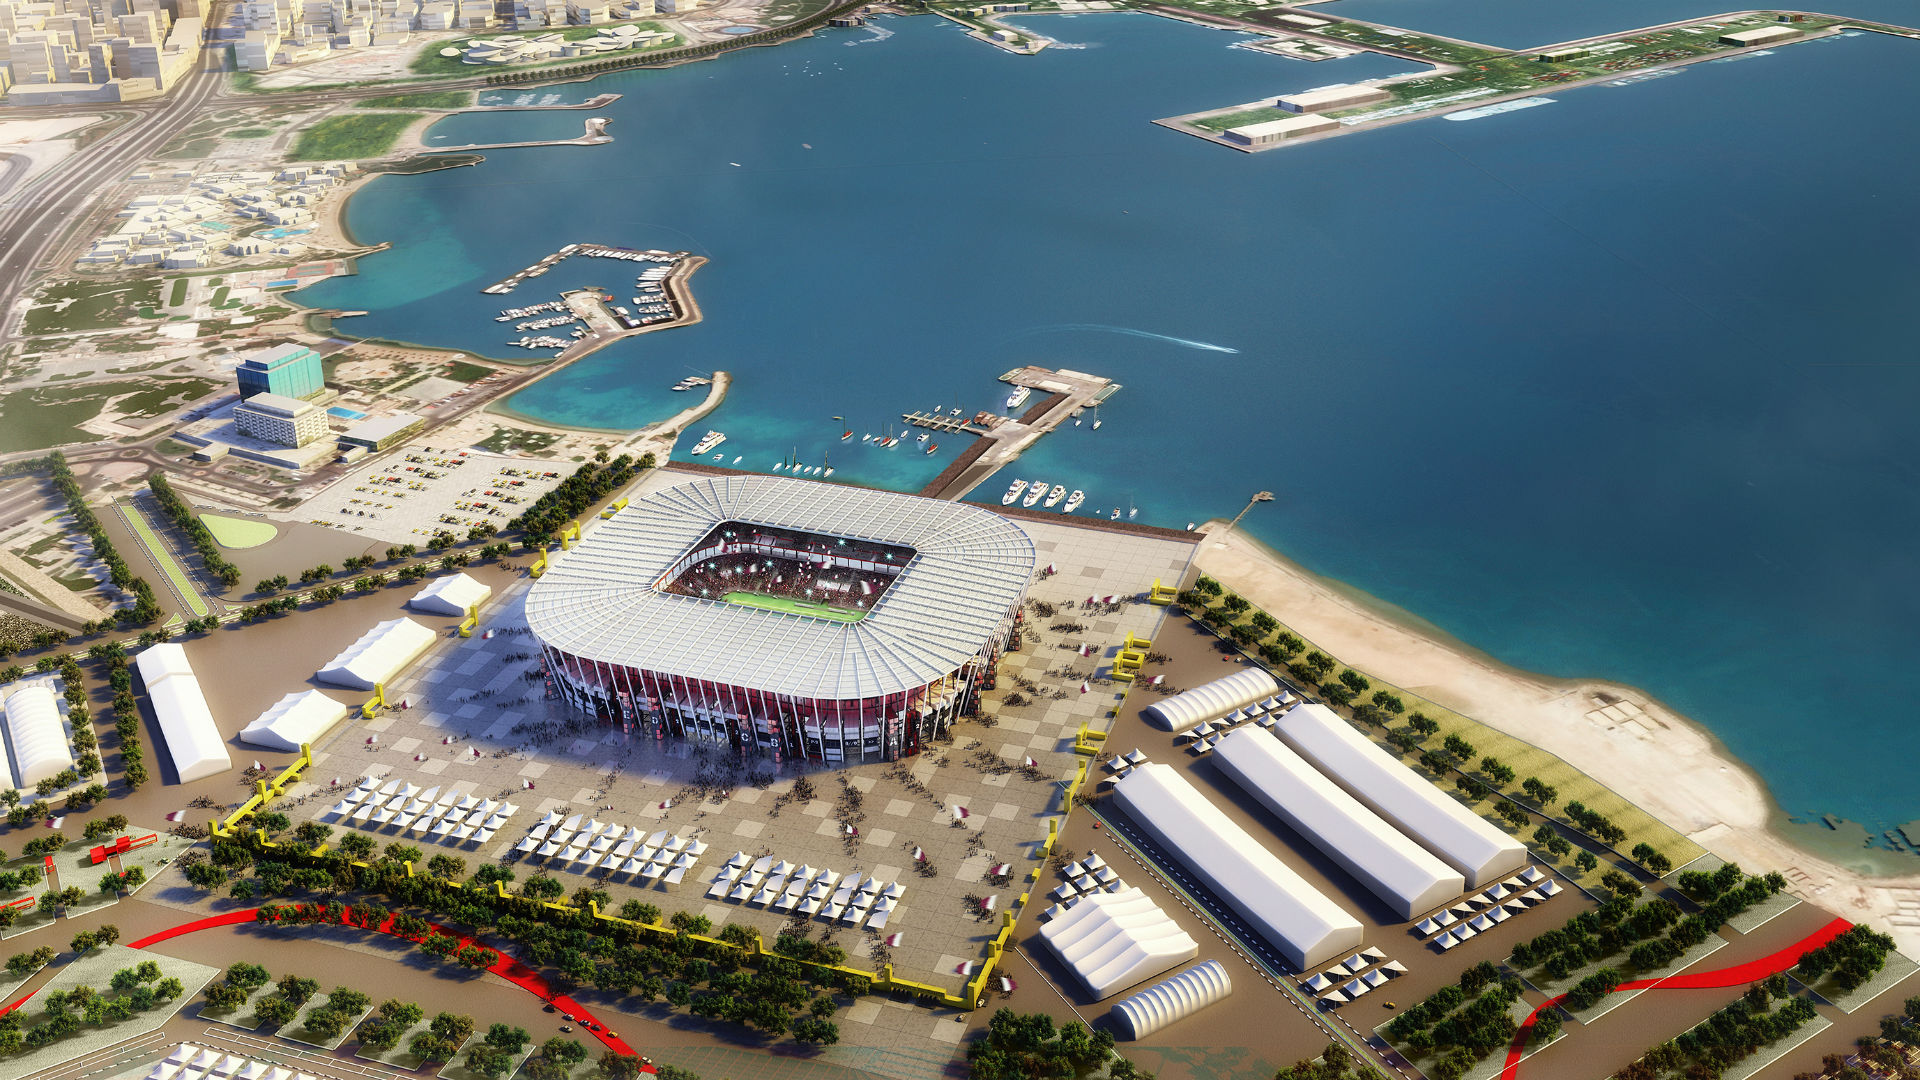 2022 world cup stadiums